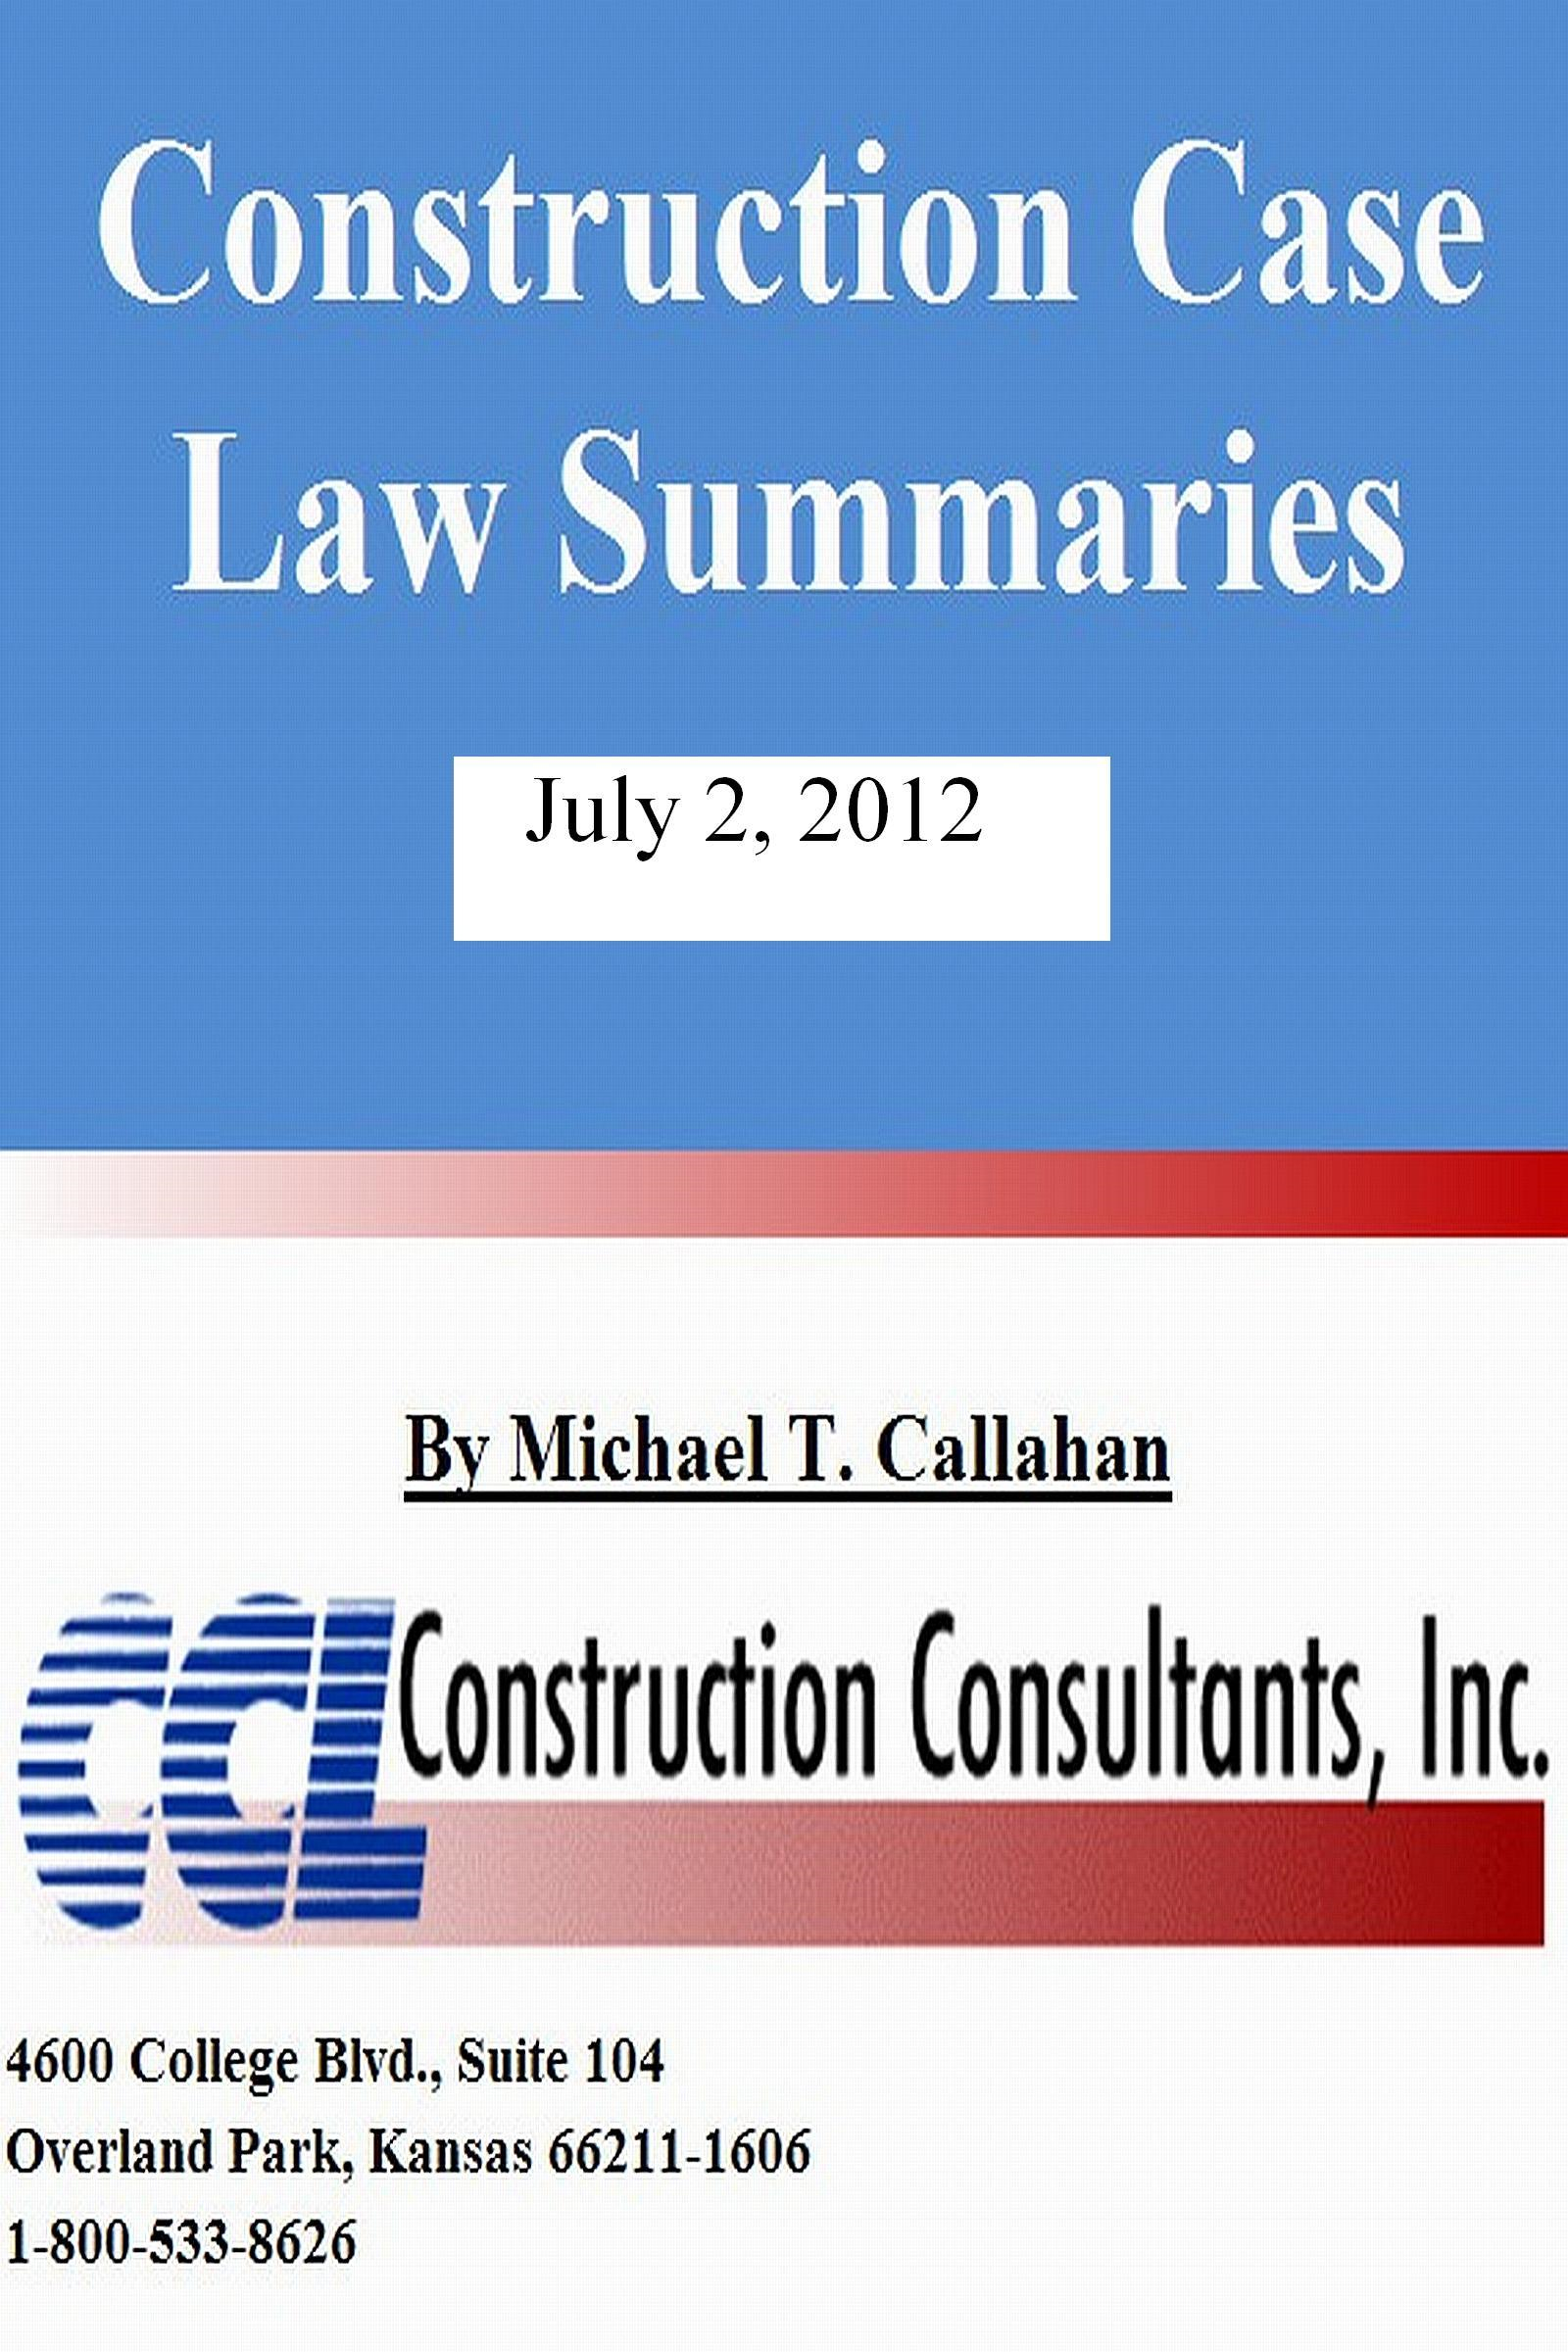 Construction Case Law Summaries: July 2, 2012